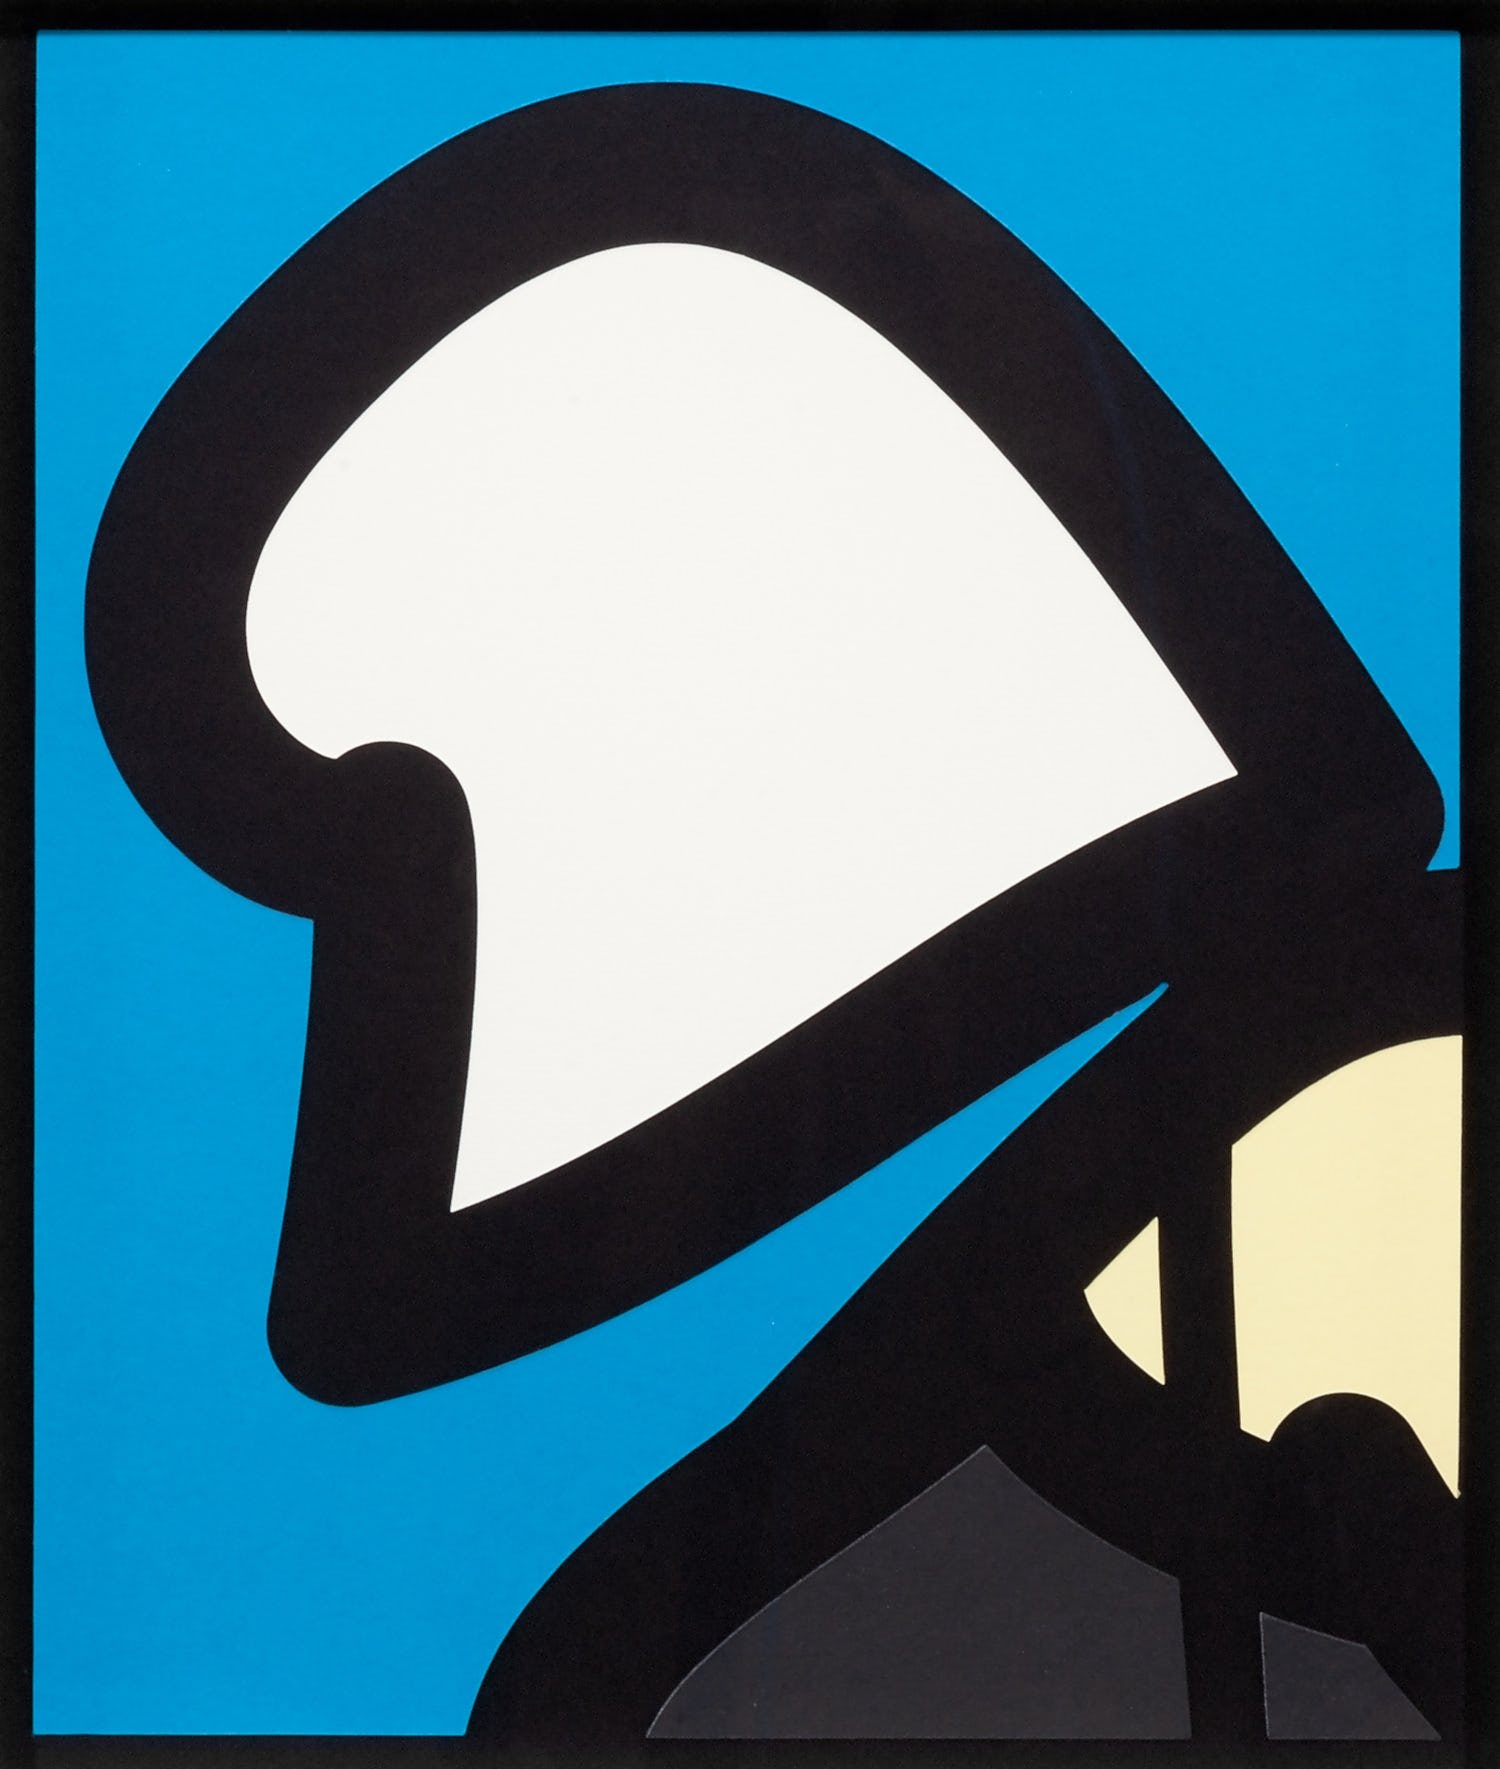 Beach head 8. Cut out poster by Julian Opie